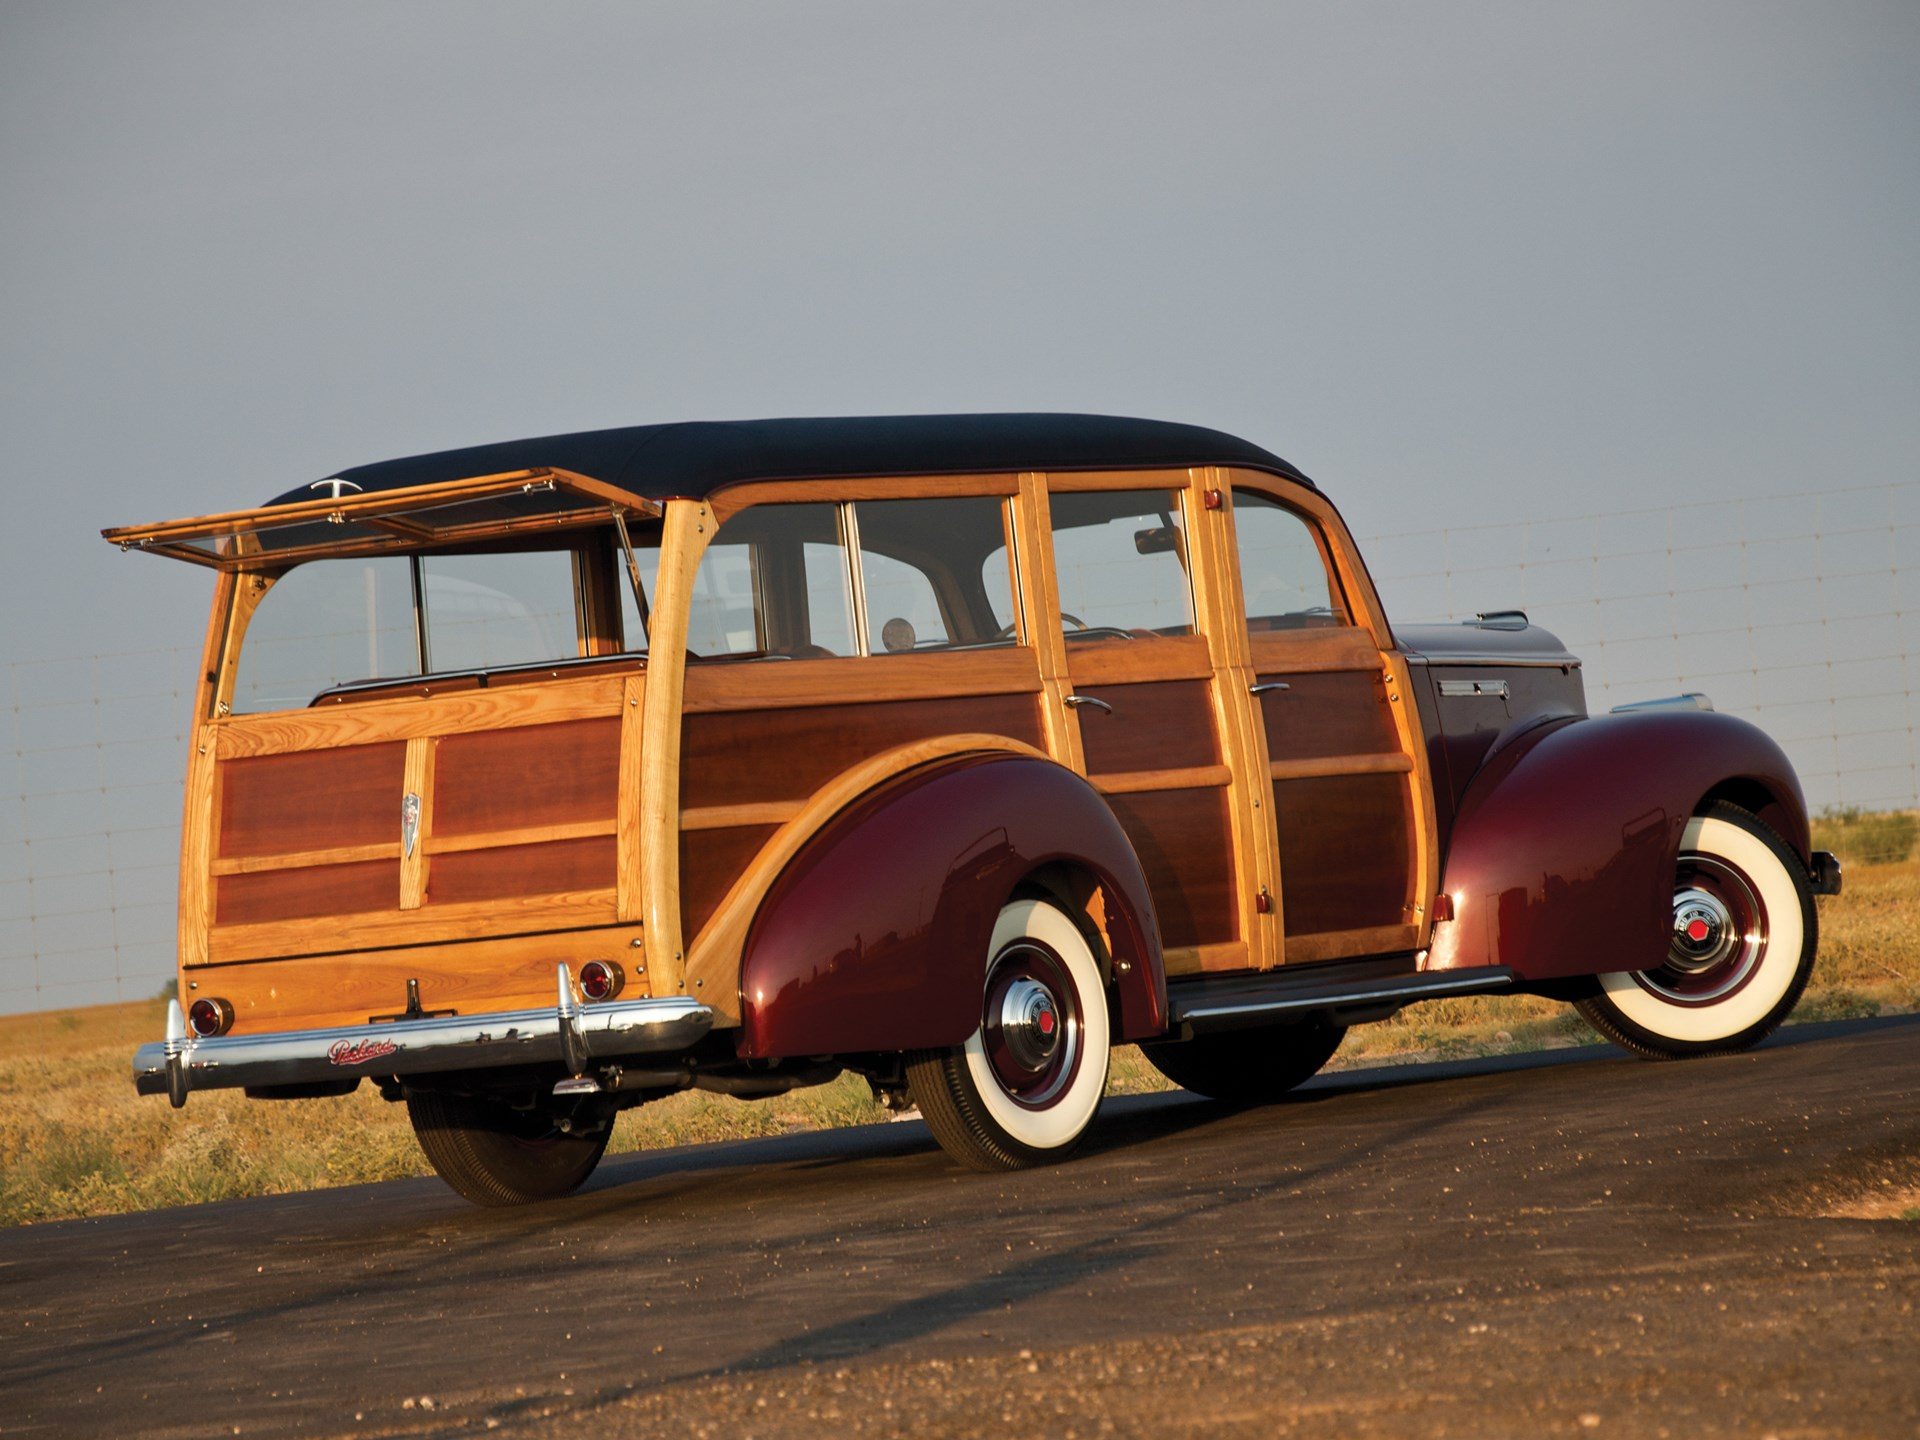 1941 Packard One-Ten Deluxe Station Wagon by Hercules